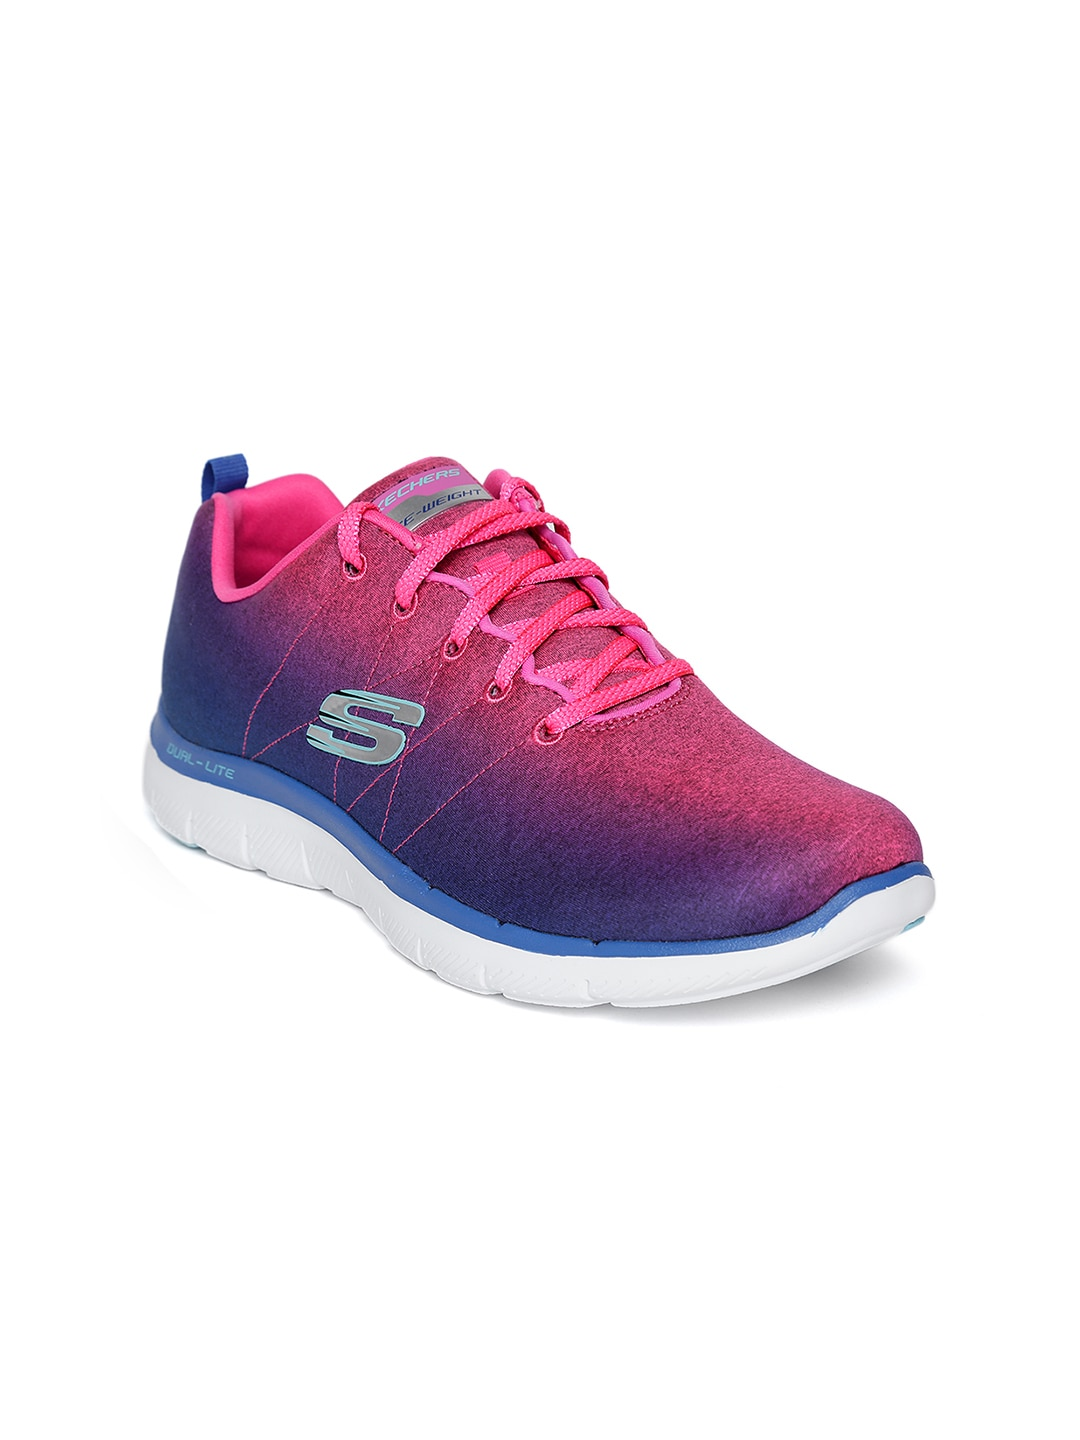 d35b943e61a Women Footwear - Buy Footwear for Women   Girls Online